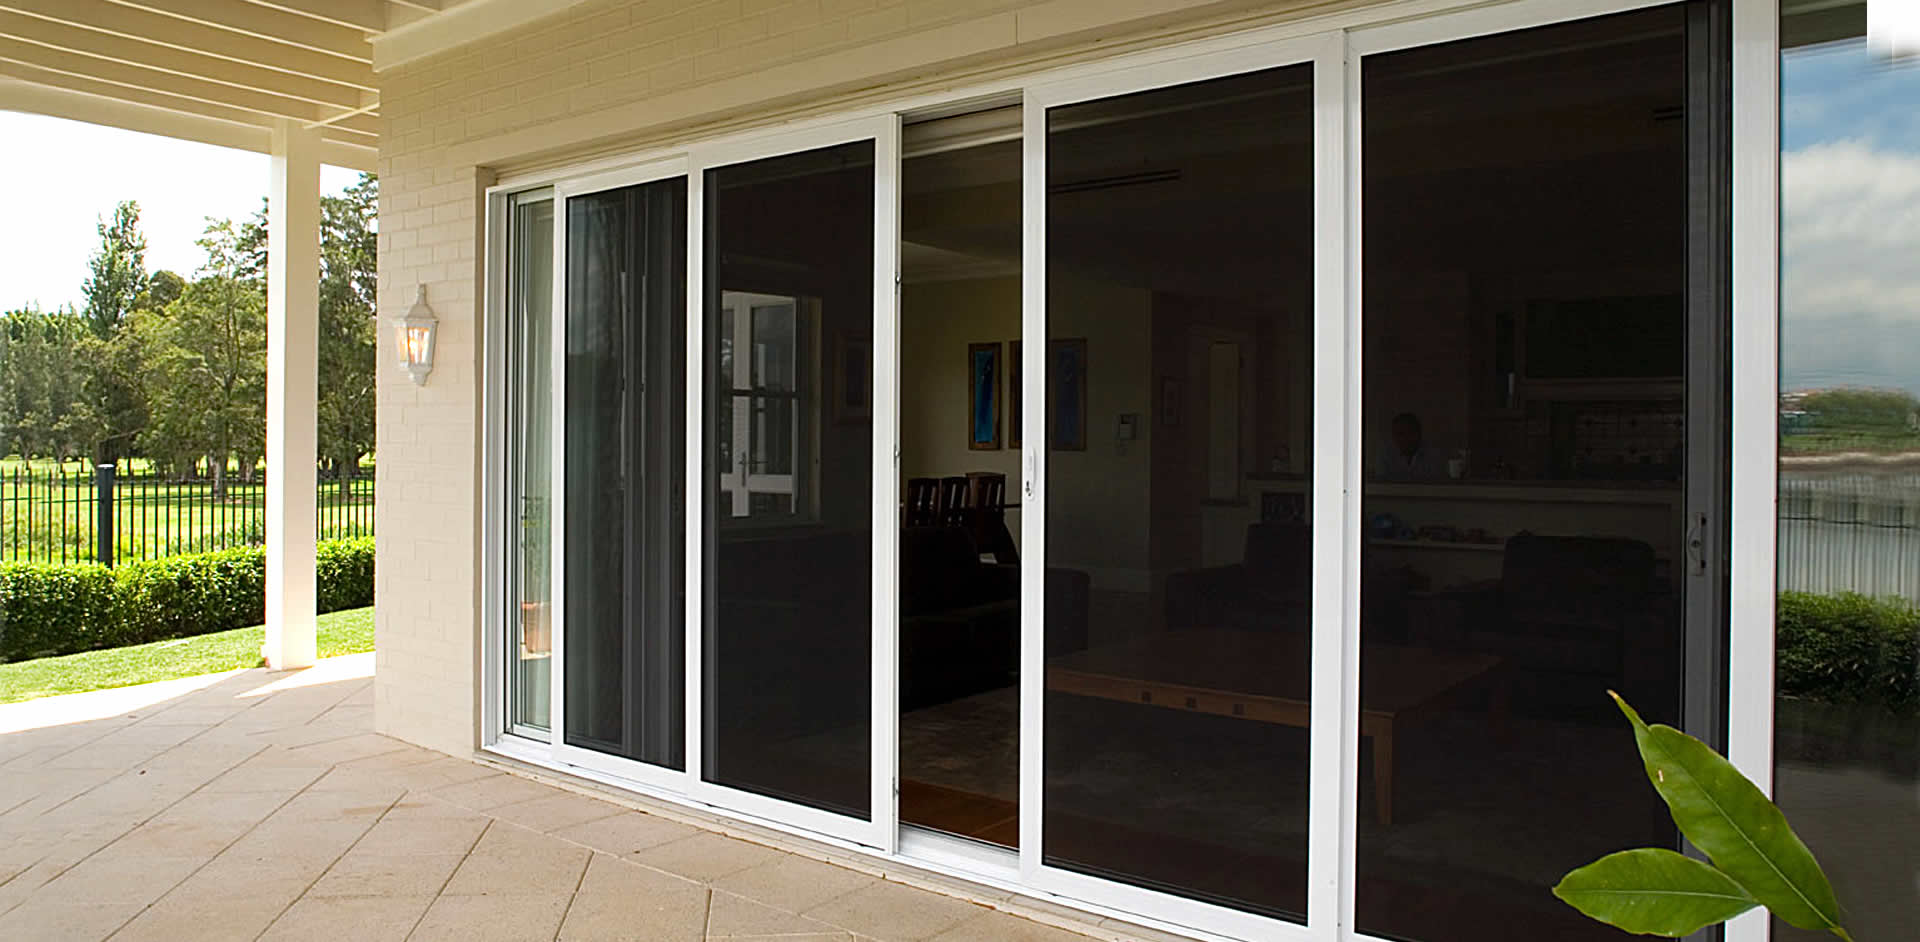 Custom Window Screens Security Screens For Doors And Windows Shade And Shutter